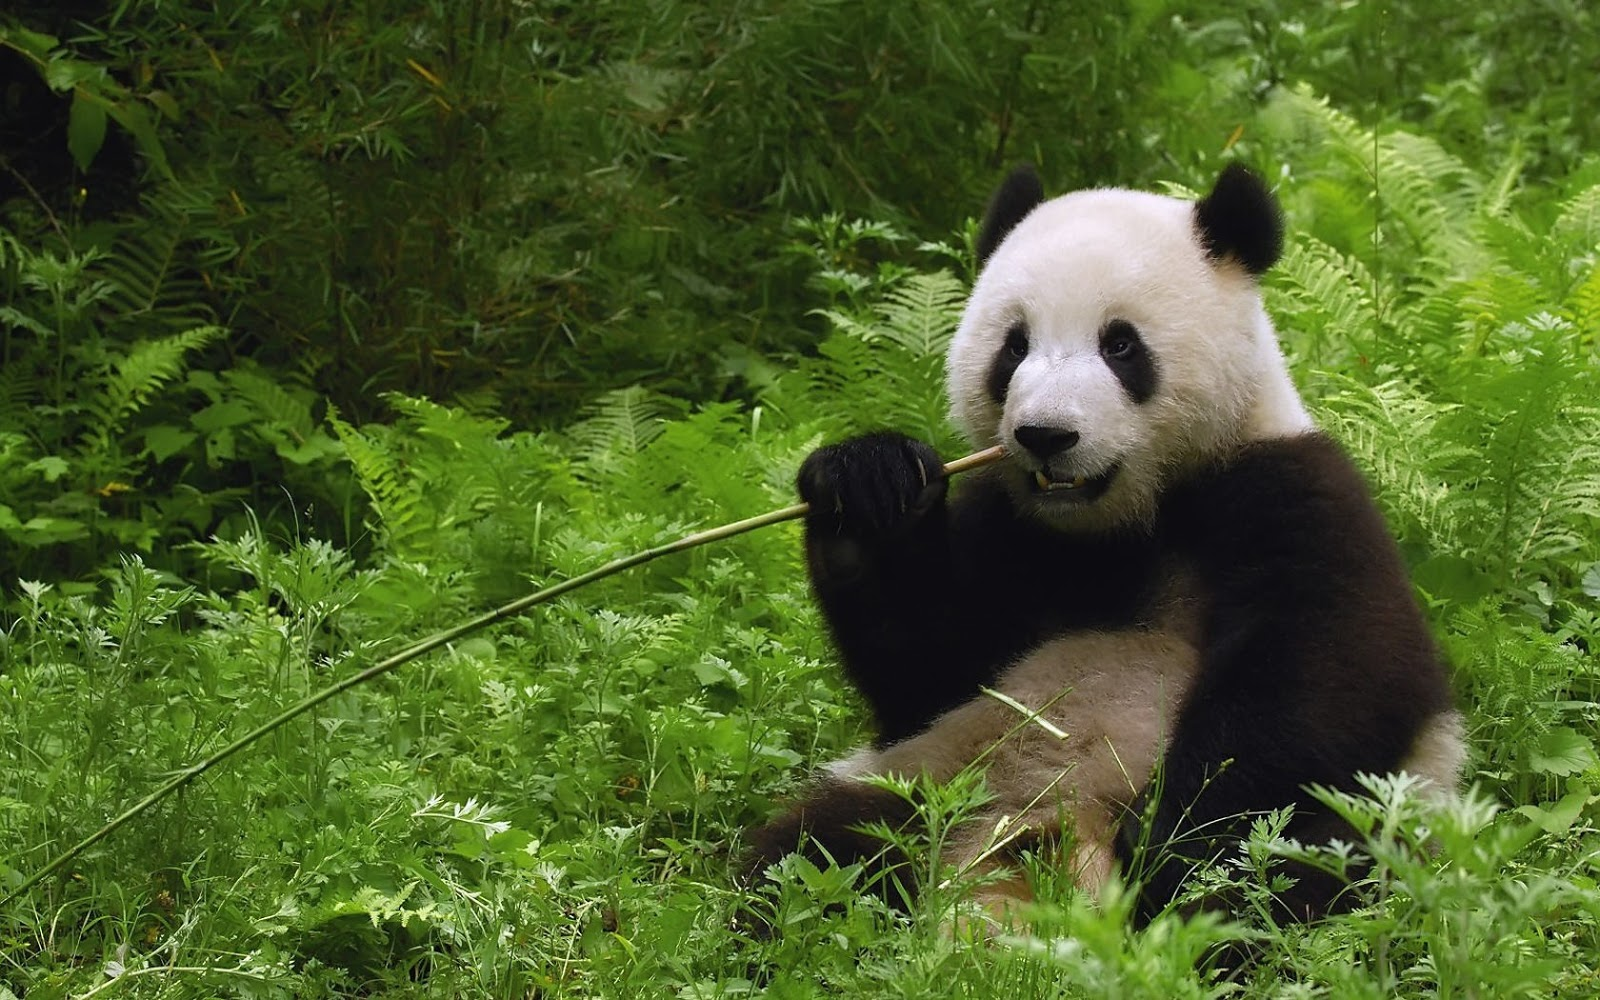 panda pictures hd wallpapers - photo #4